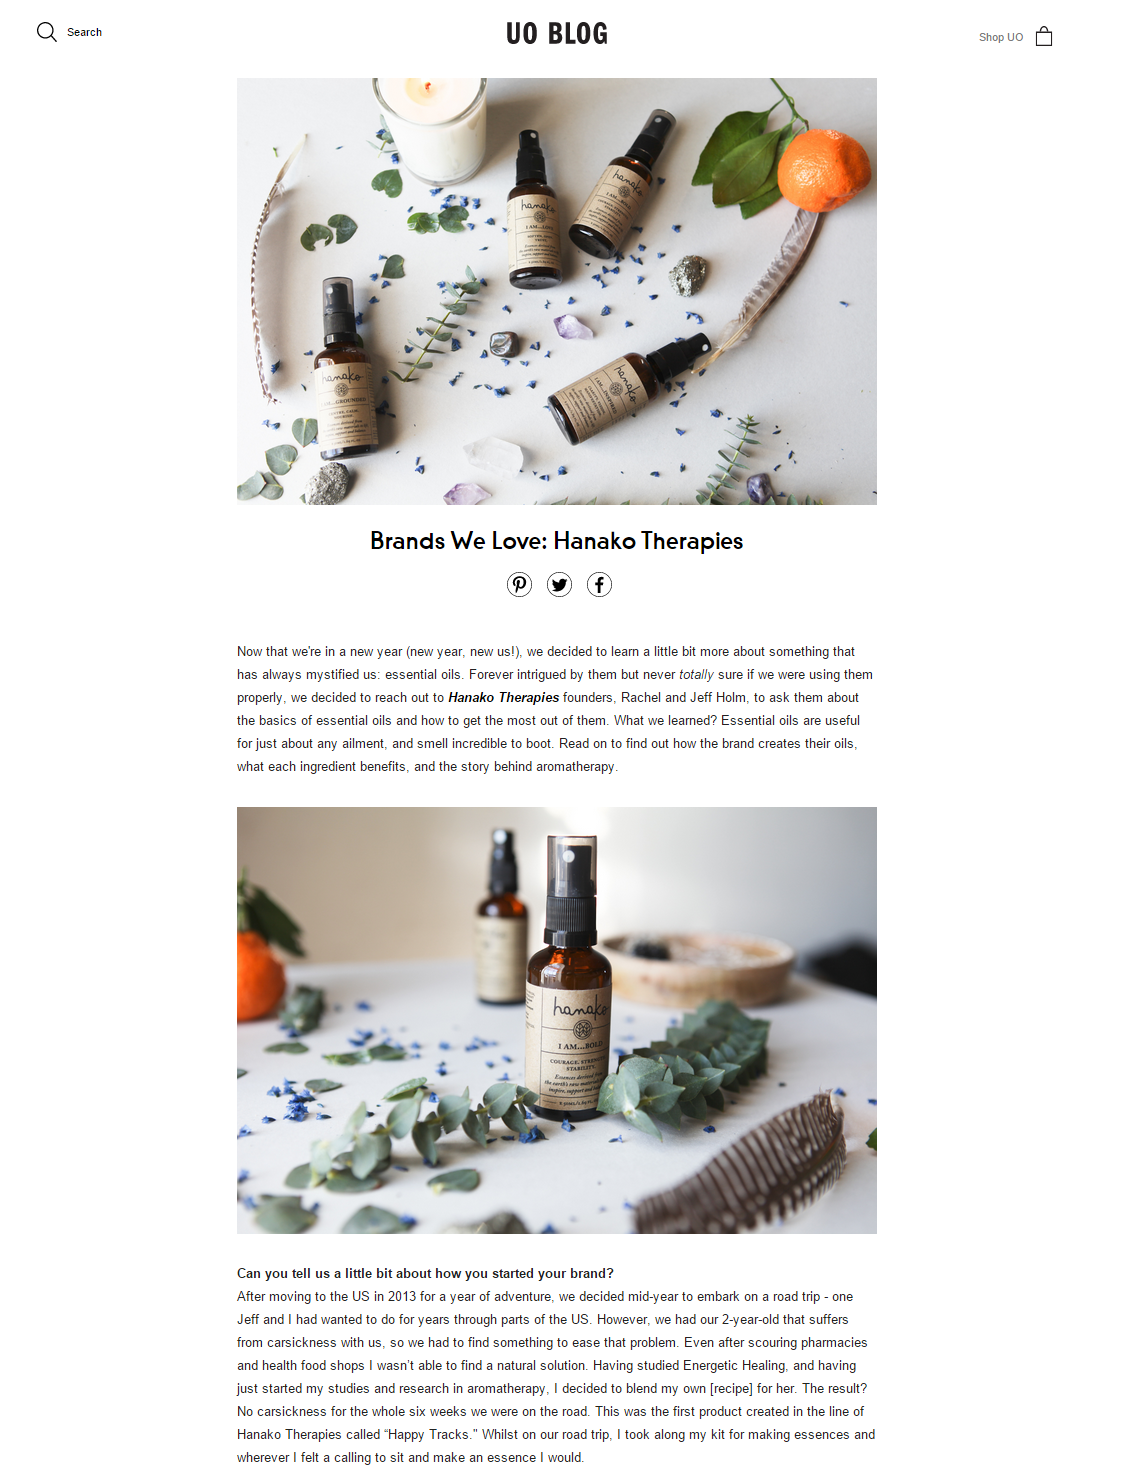 Hanako Therapies featured in Urban Outfitters